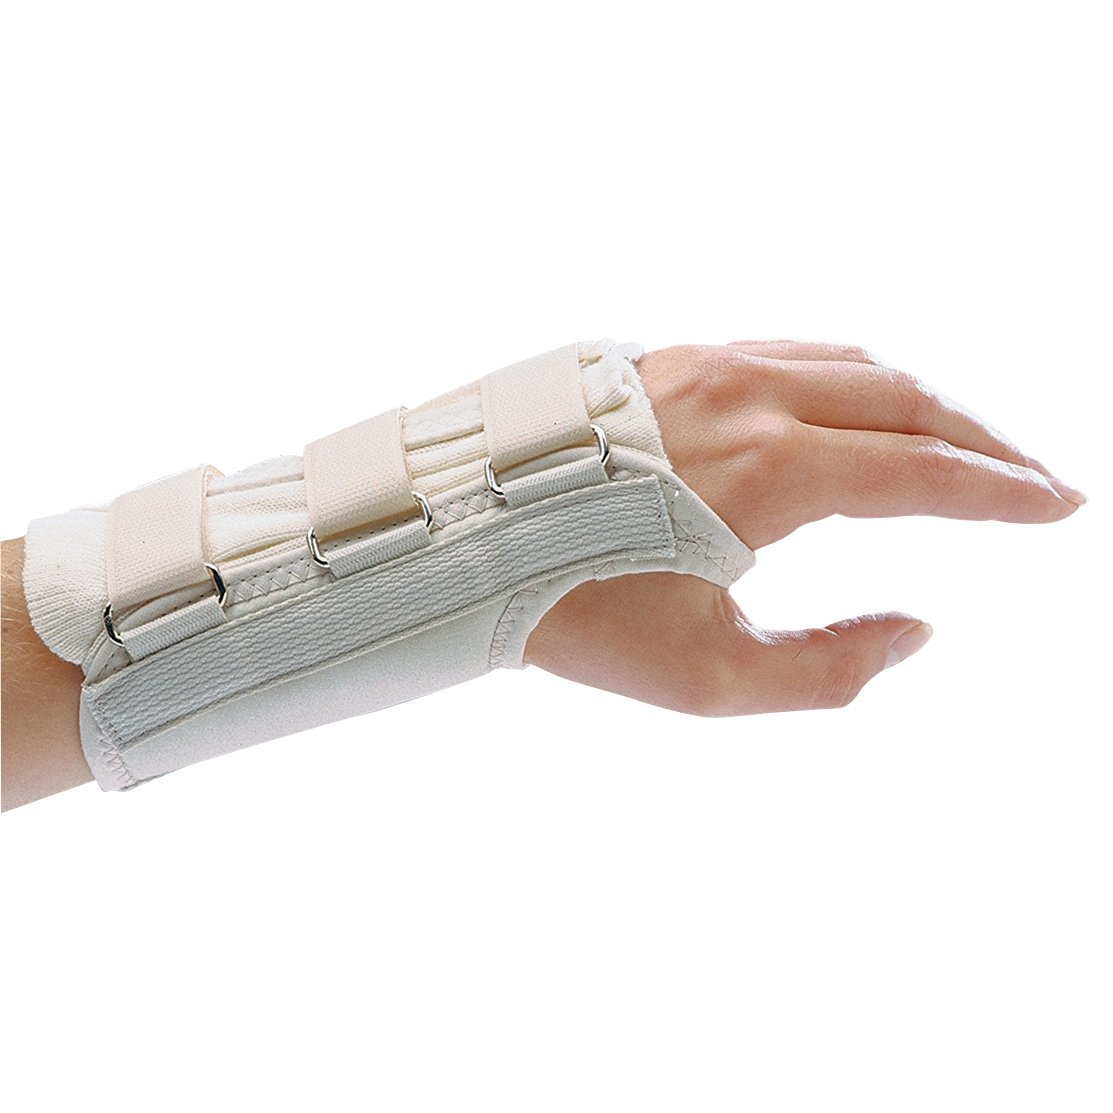 Rolyan D-Ring Left Wrist Brace, Size Large Fits Wrists 7.75''-8.5'', 8.875'' Long Length Support, Beige Brace with Straps and D-Ring Connectors to Secure and Stabilize Hands and Wrists